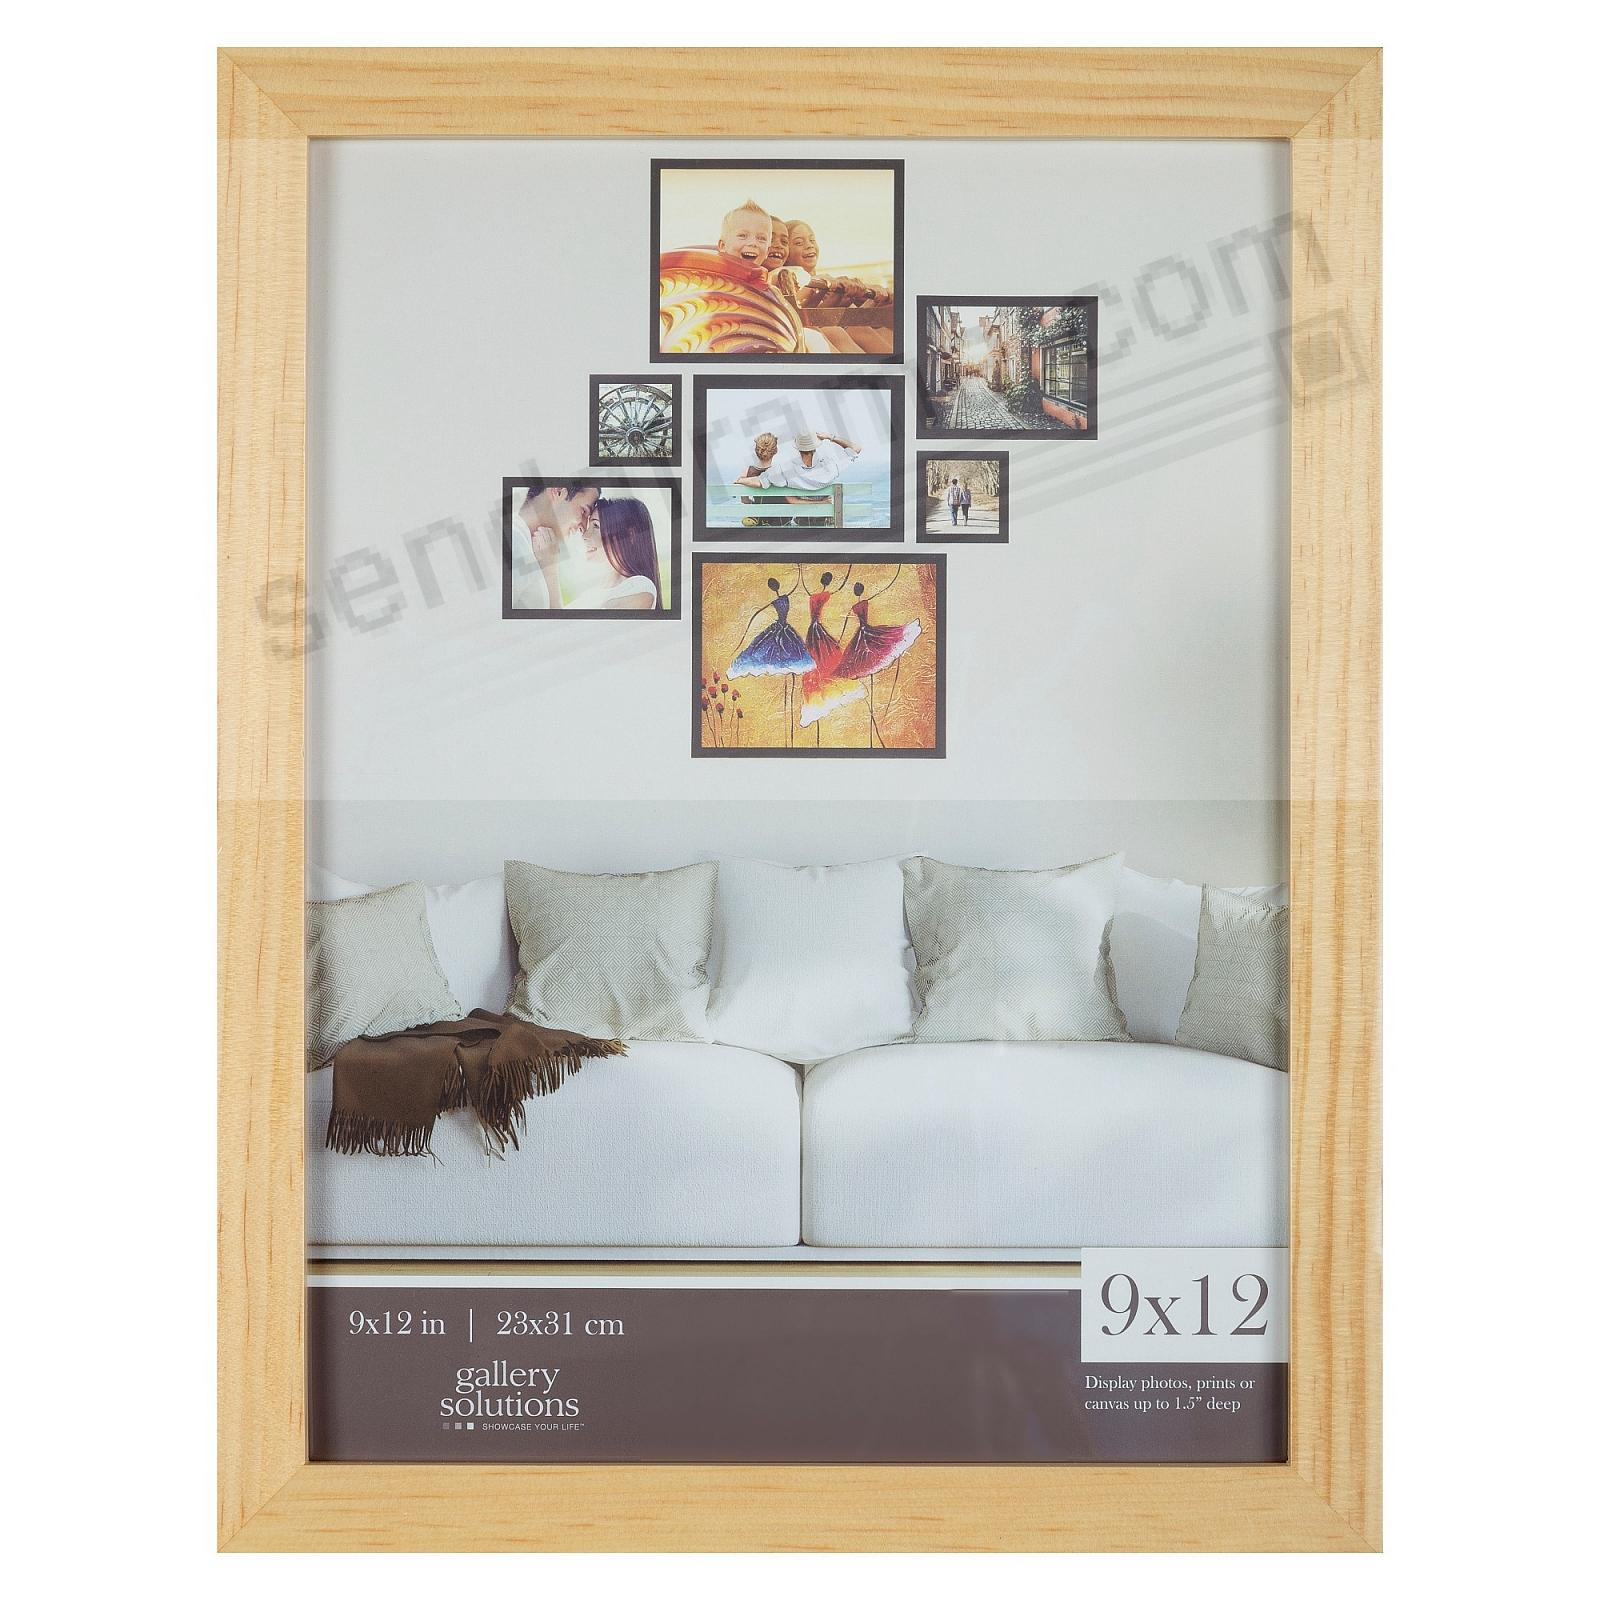 NATURAL GALLERY 9x12 frame by Gallery Solutions®